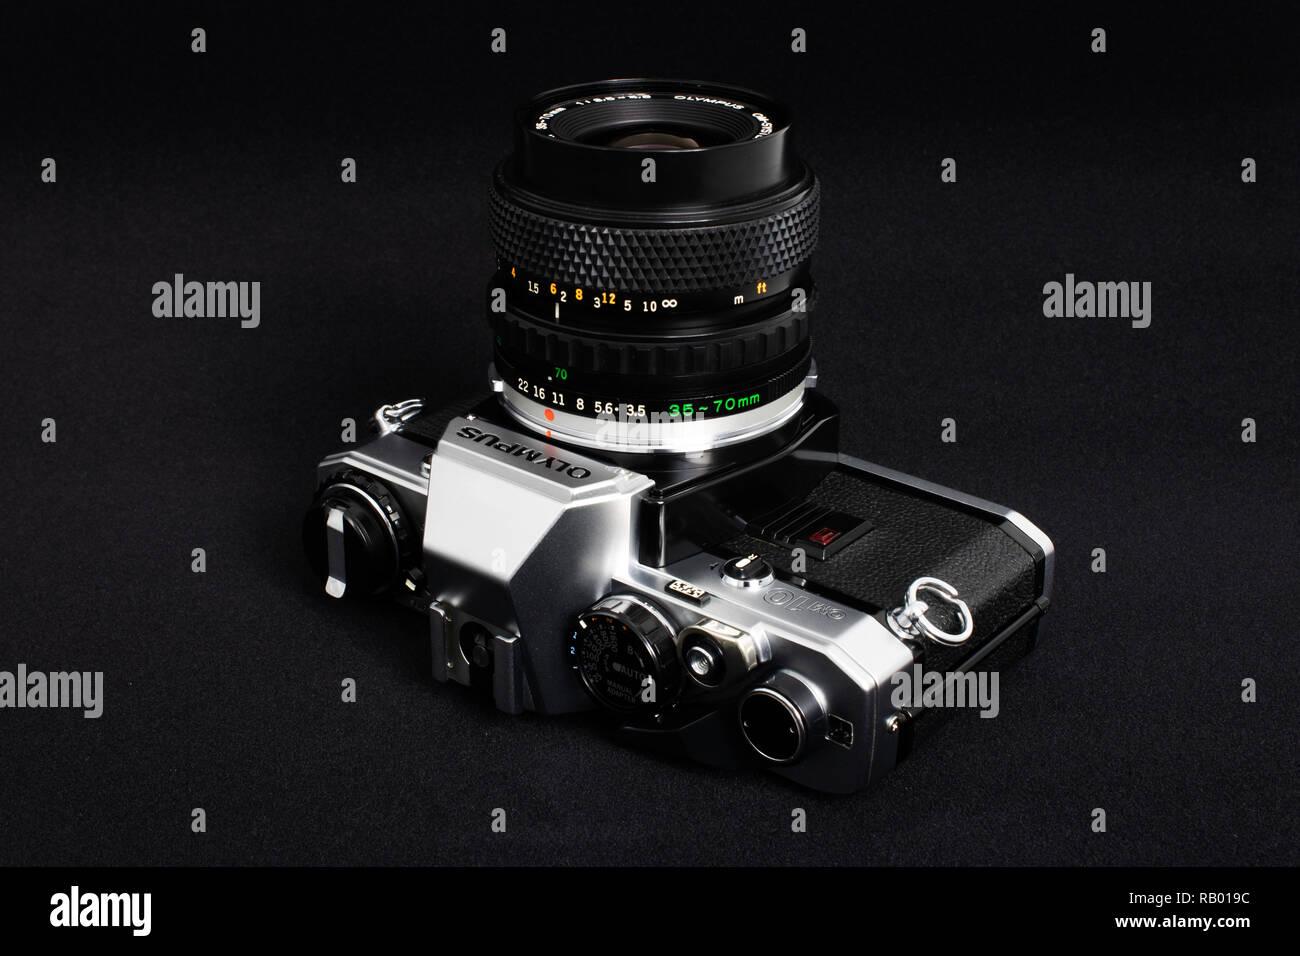 Prague, CZECH REPUBLIC - JANUARY 03, 2019: Olympus OM-10 is a 35mm film camera, launched by Olympus Corporation in June 1979, laid on dark background - Stock Image